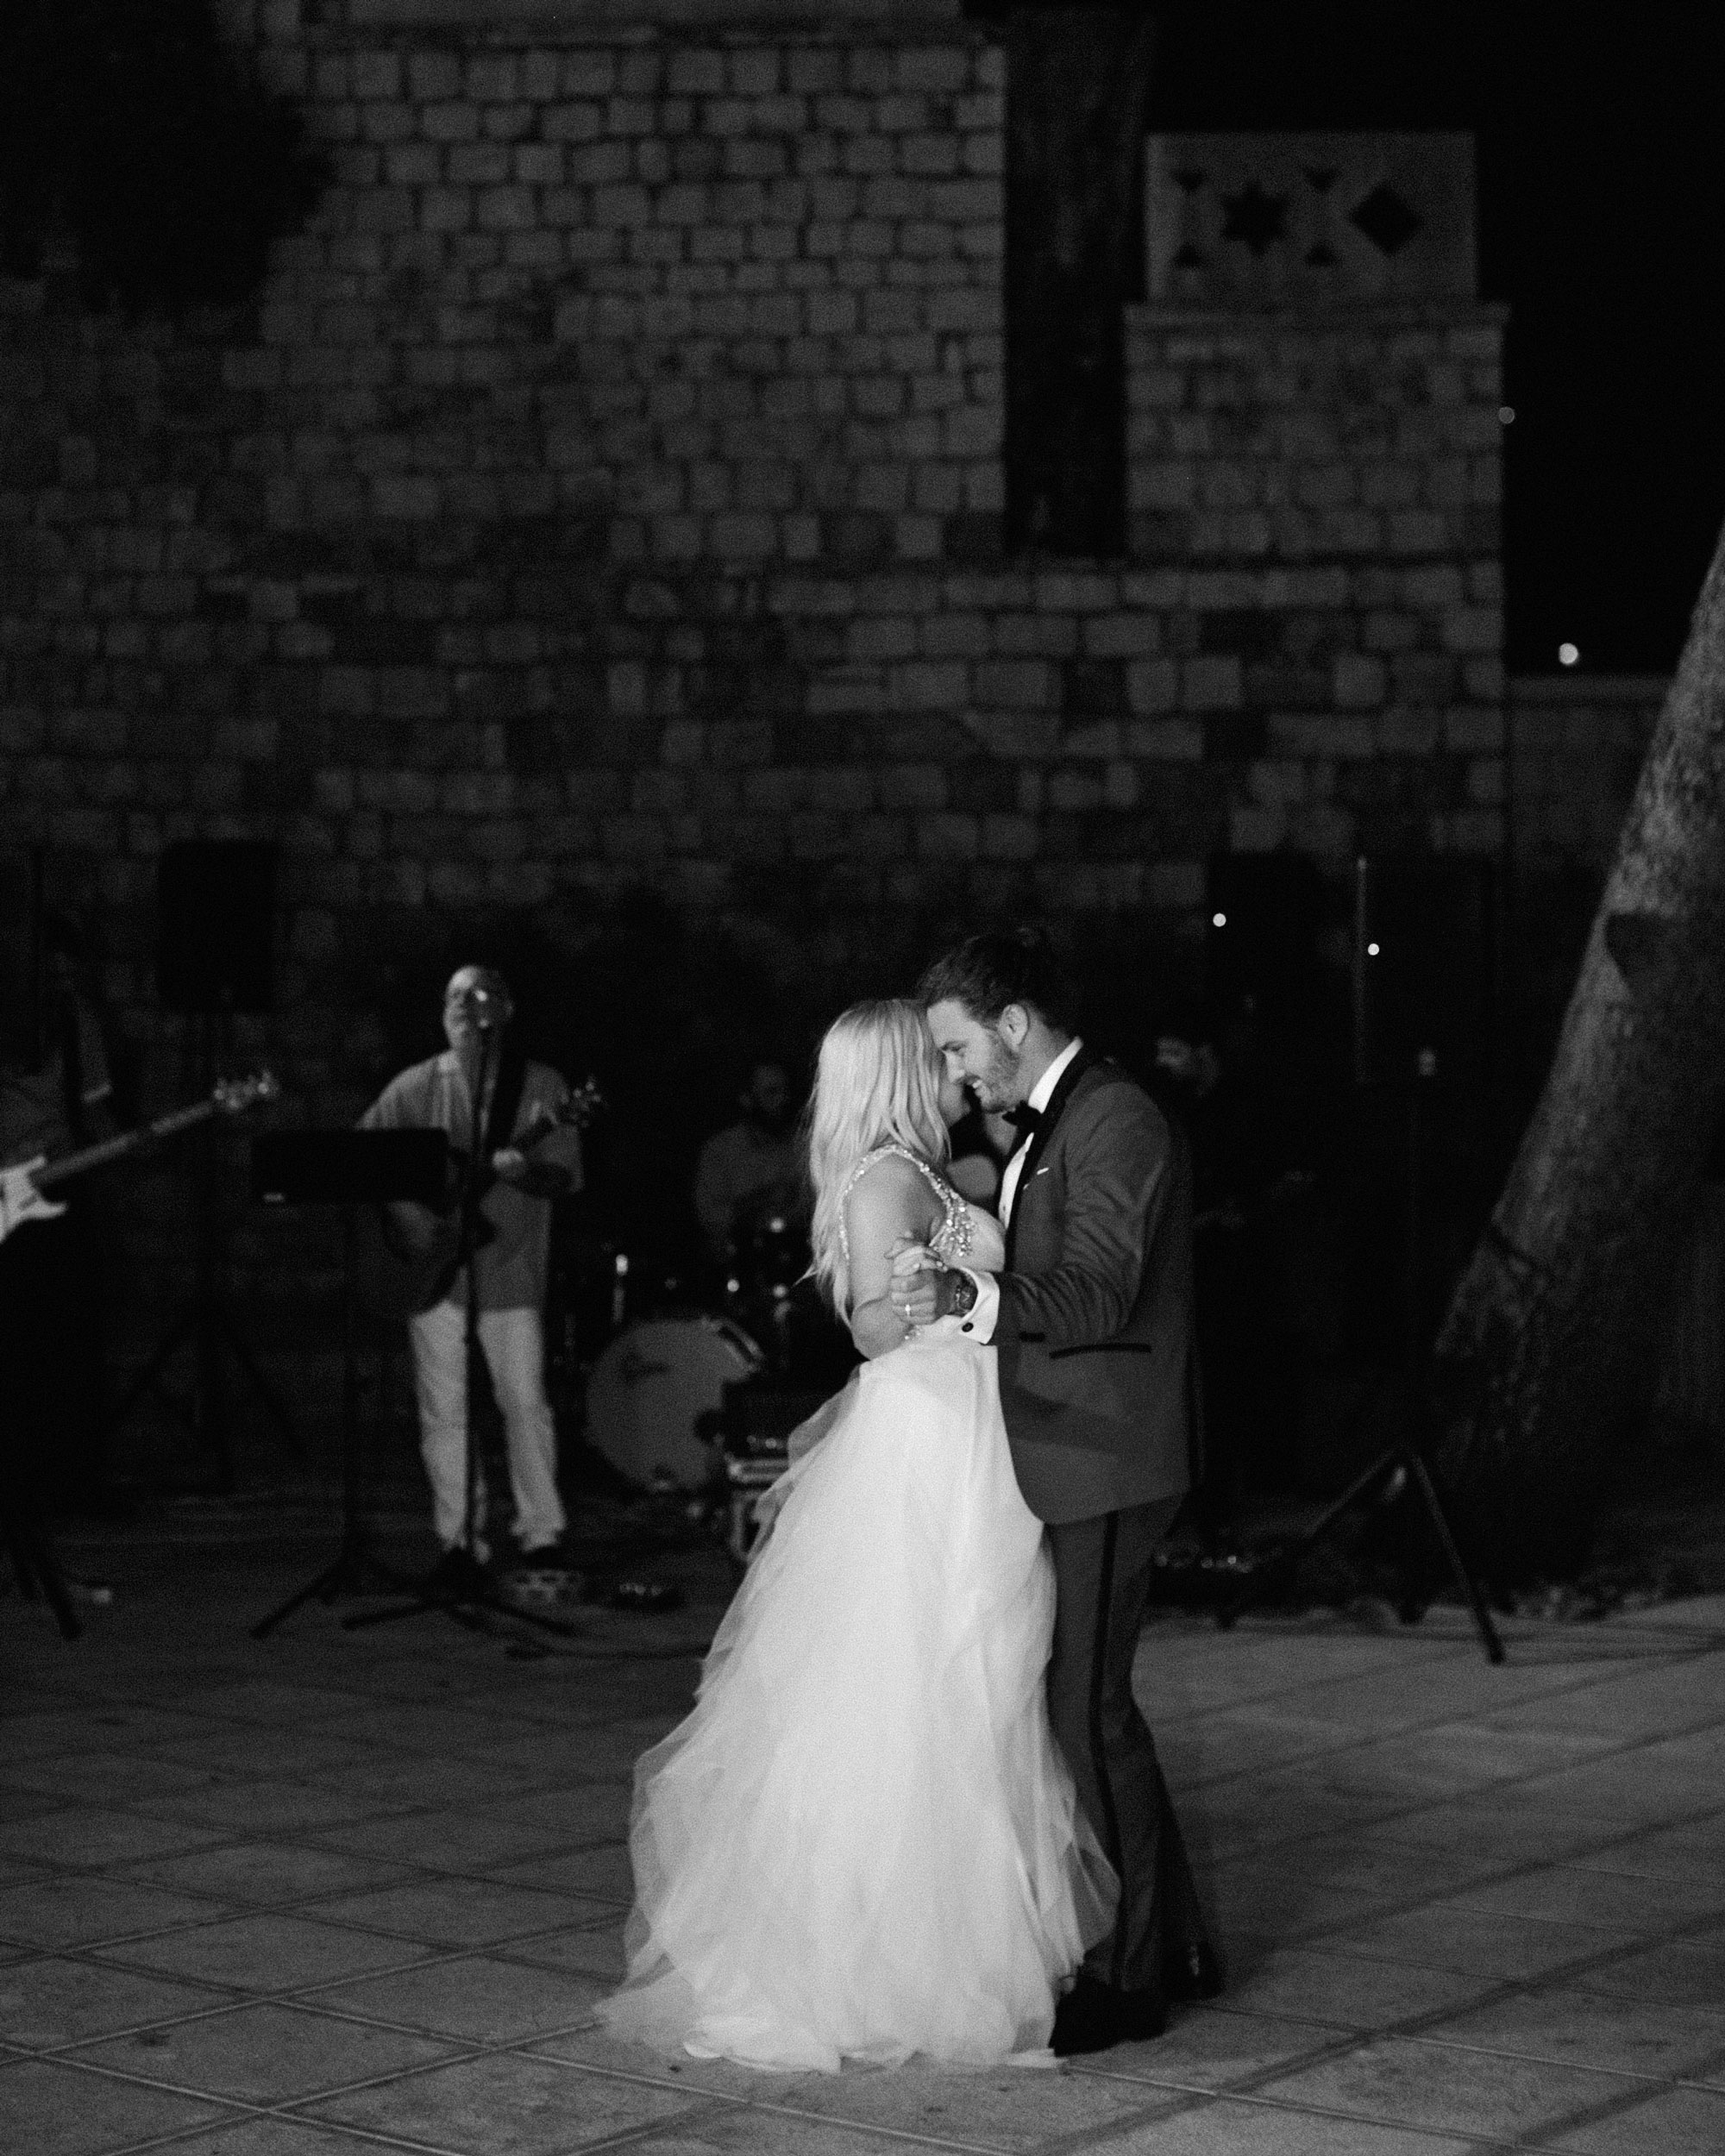 melissa-mike-wedding-firstdance-0196-s112764-0316.jpg